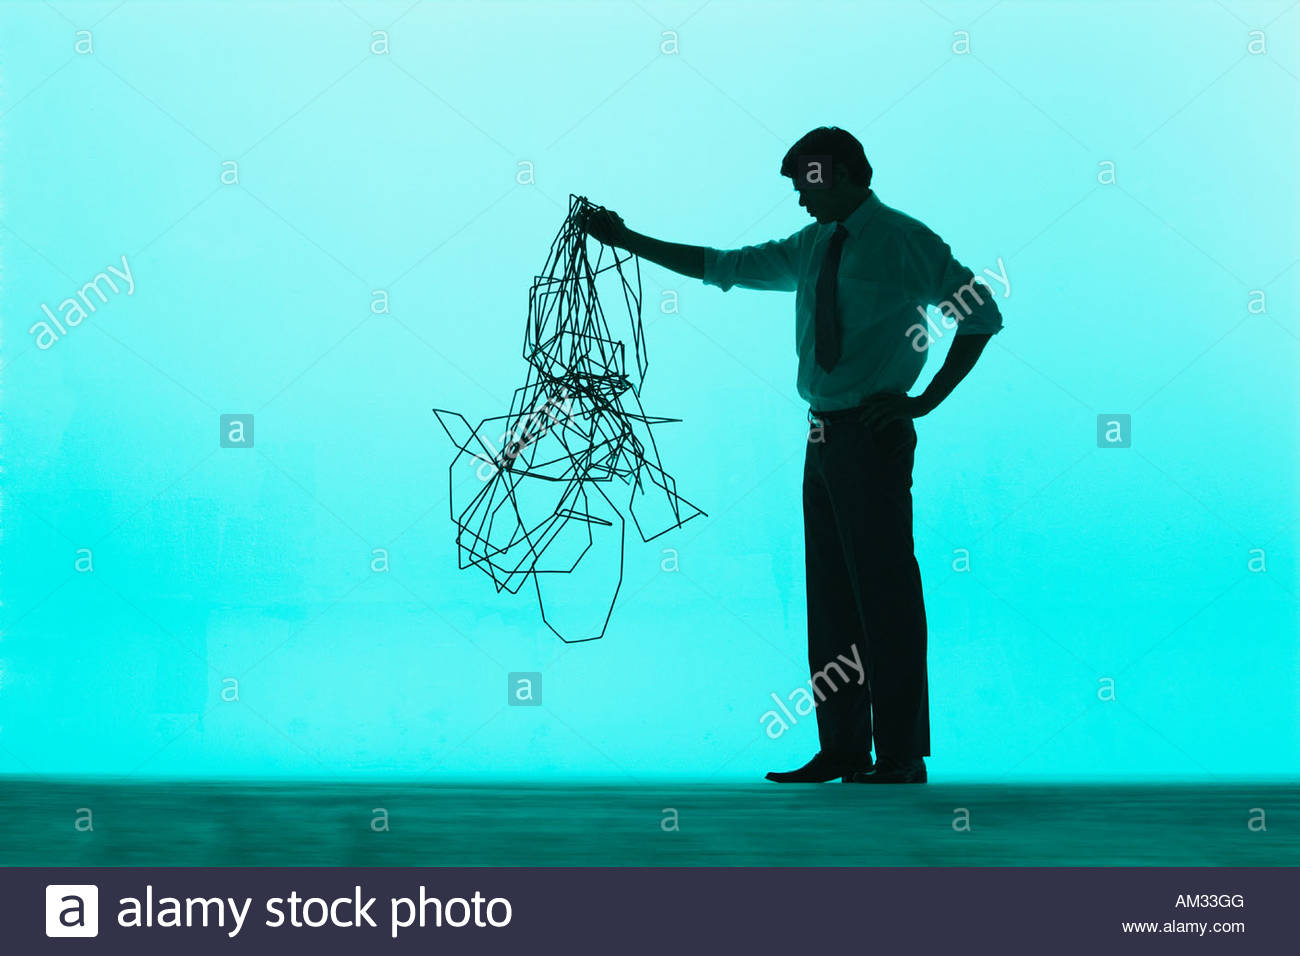 Businessman holding up a pile of cable - Stock Image